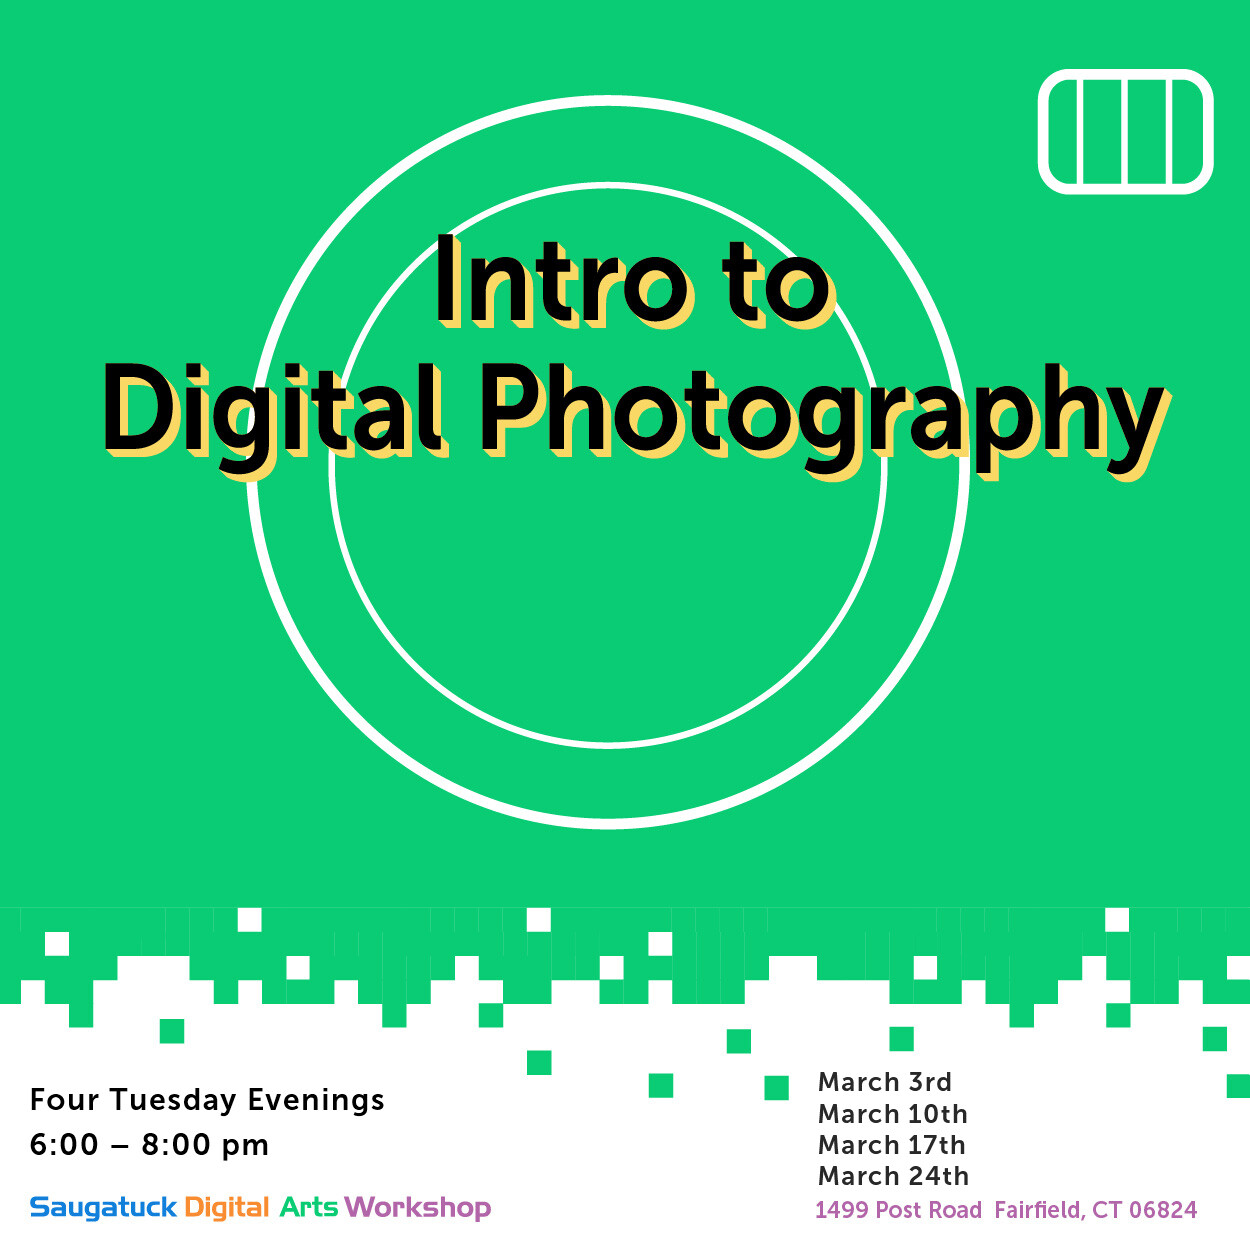 Intro to Digital Photography